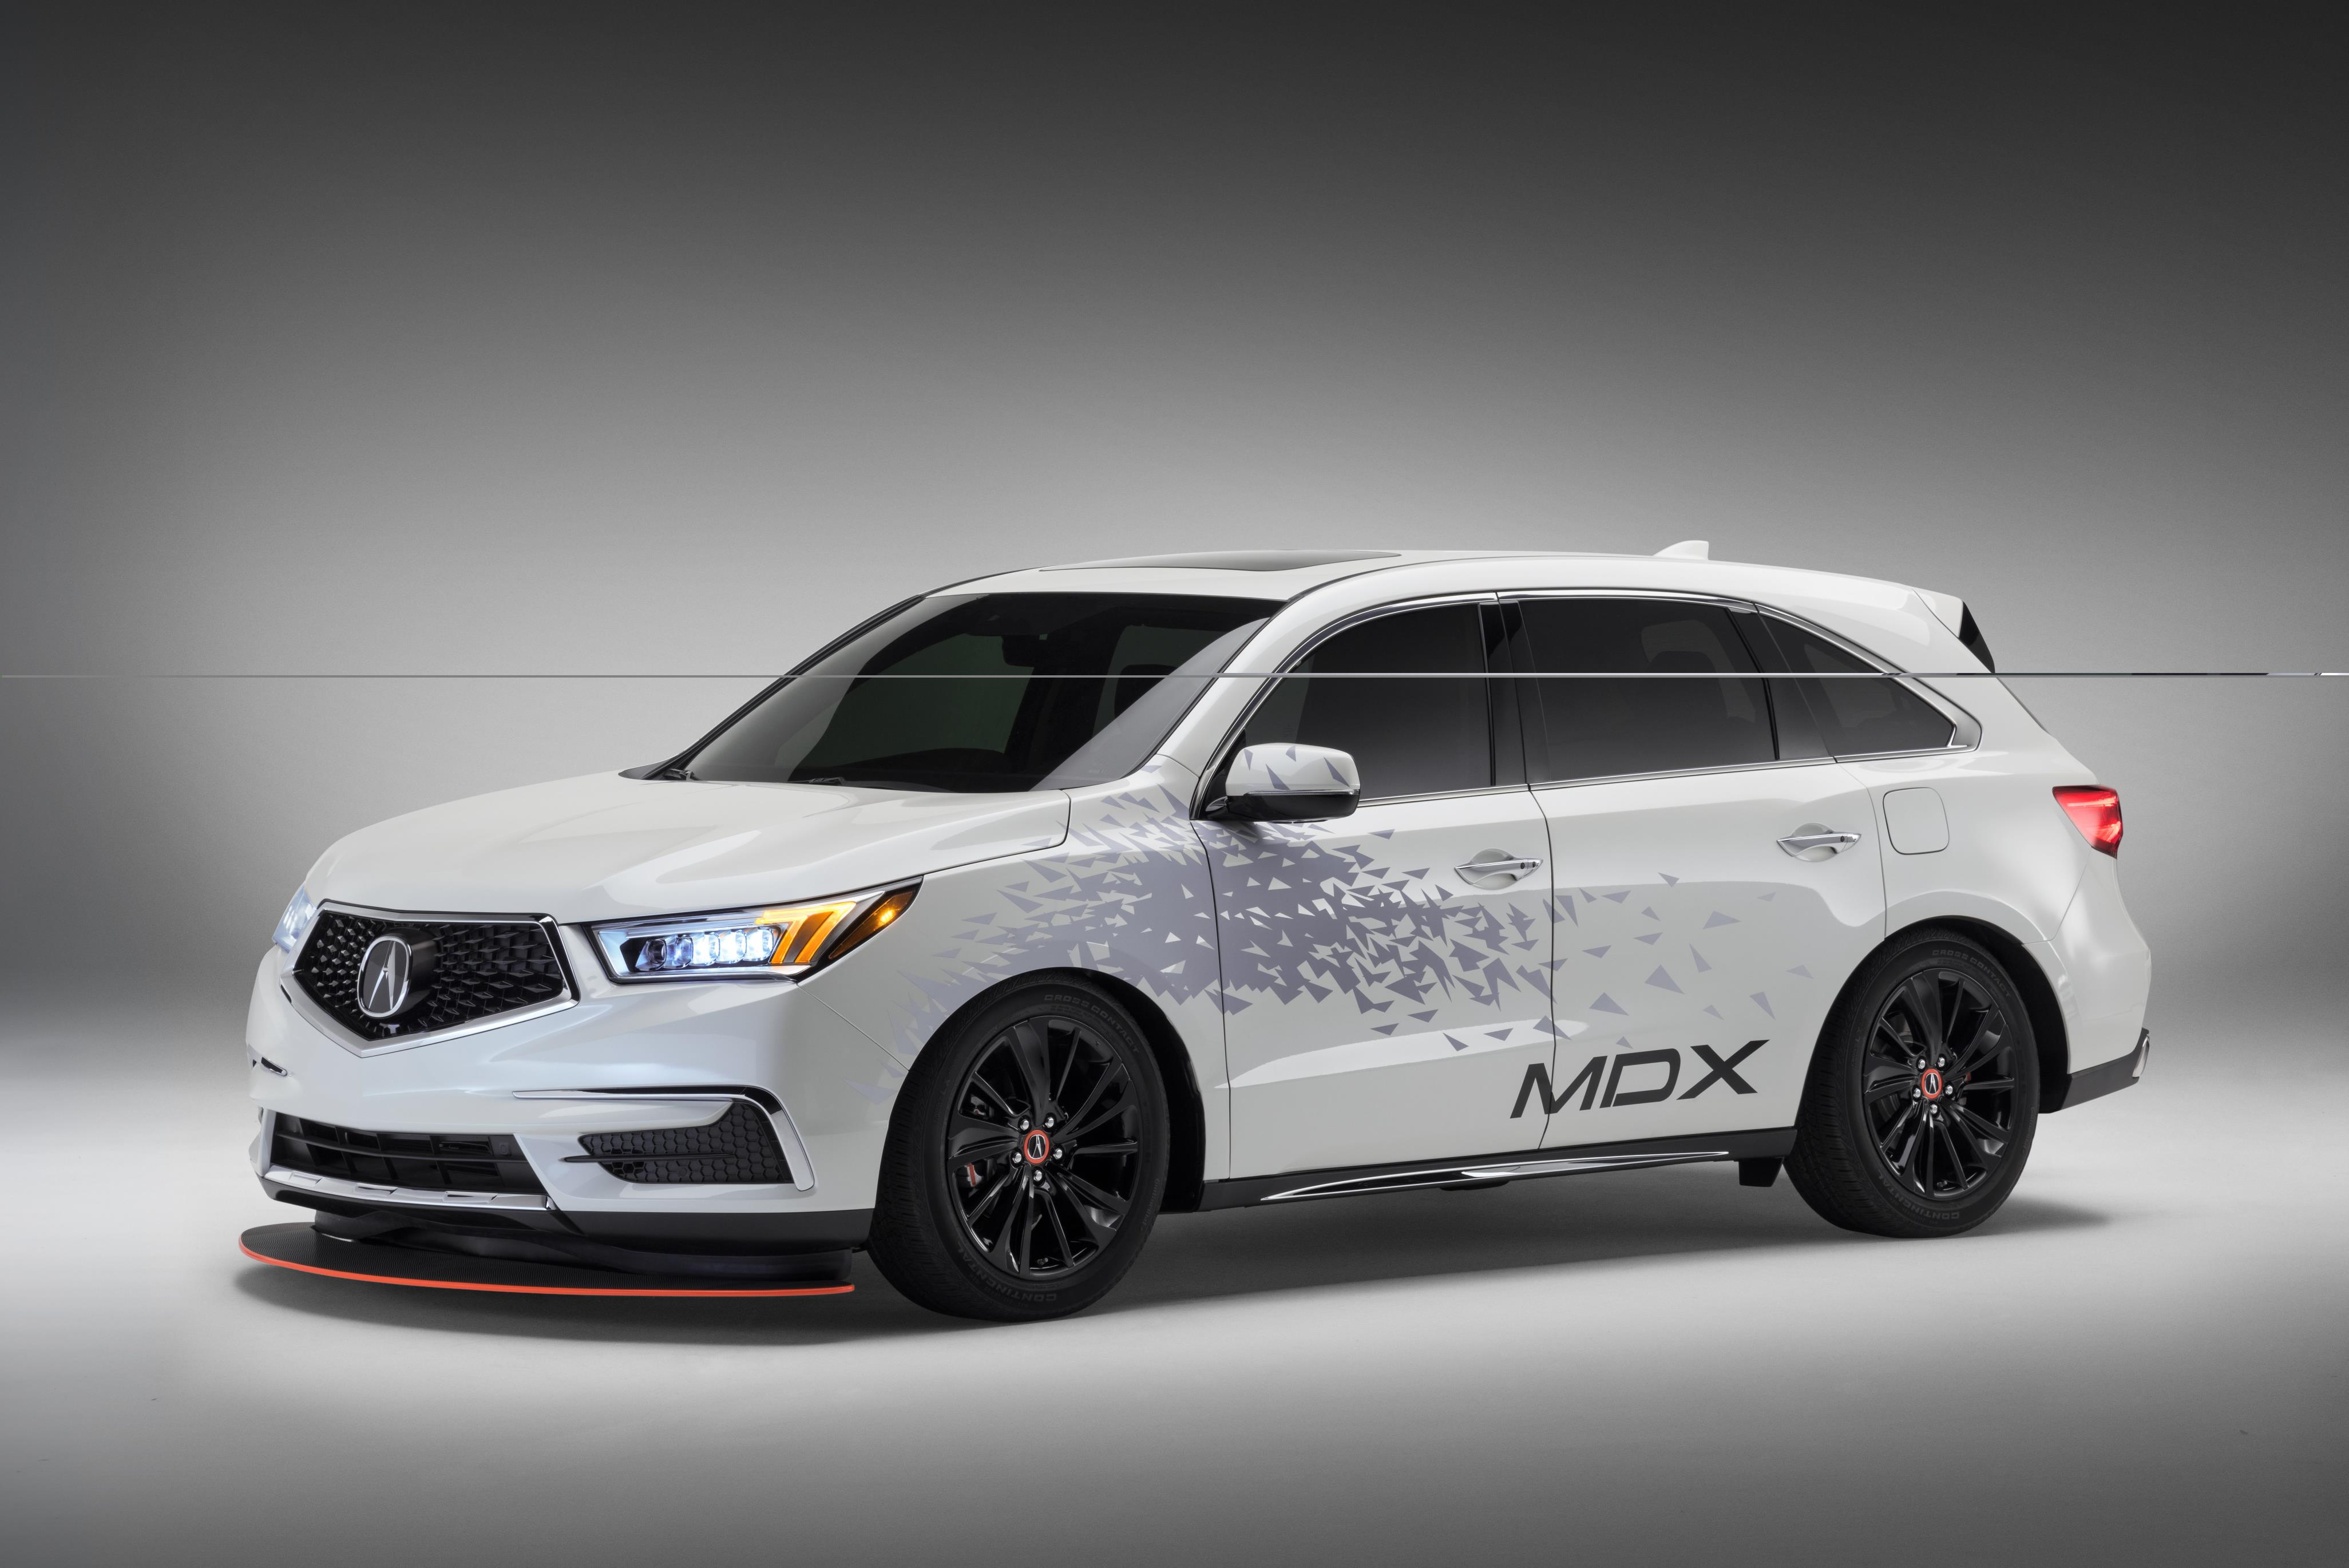 Acura MDX suv specifications